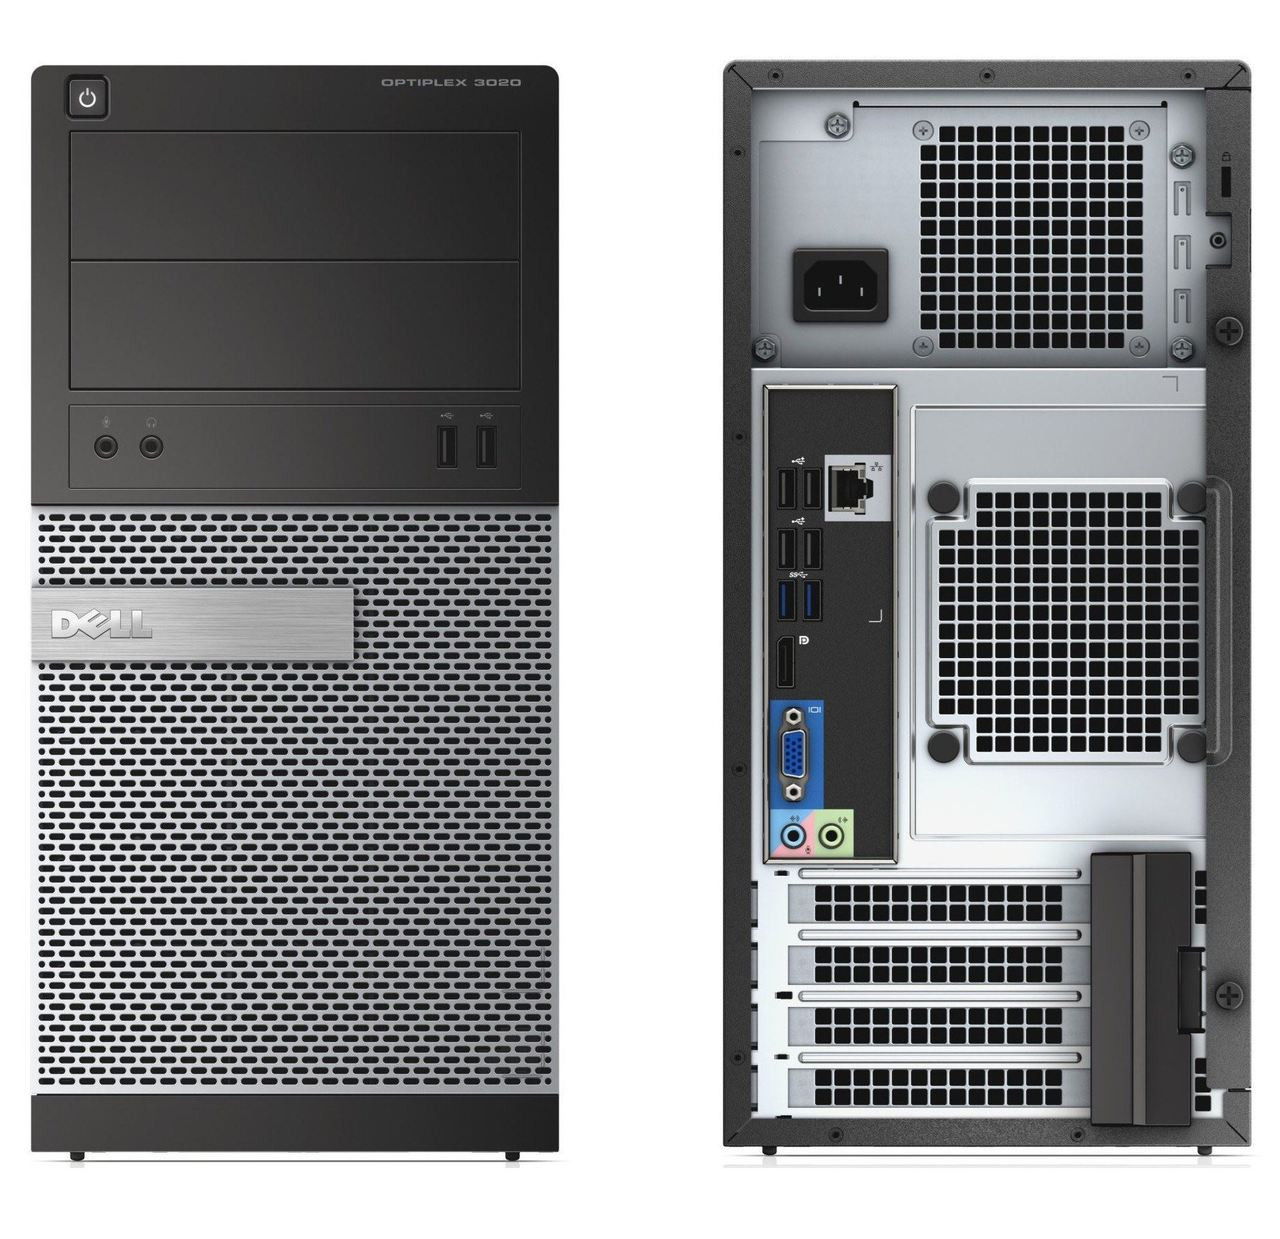 Dell Optiplex 3020 Minitower - Front and back View